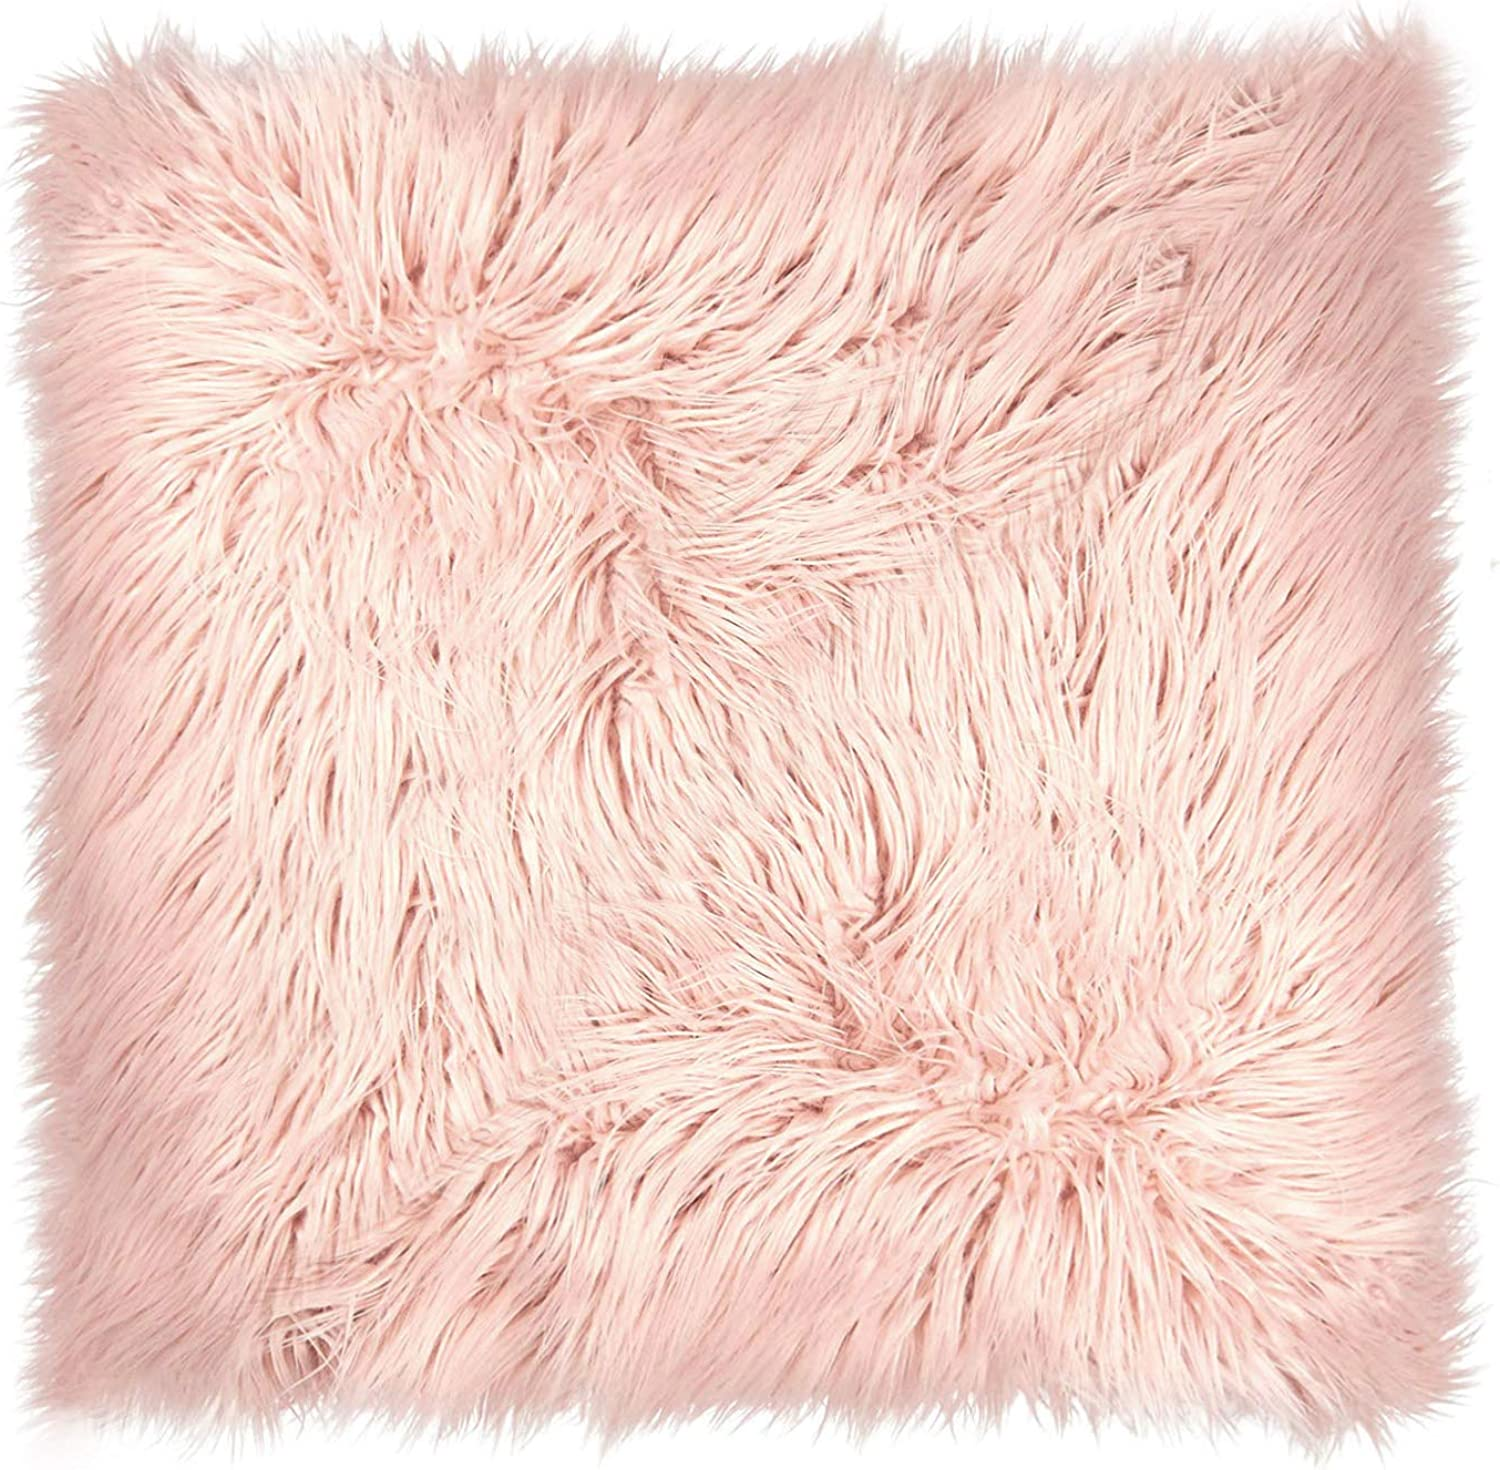 Dormify Faux Fur Mongolian Euro Pillow, Trendy Oversized Throw Pillow or Floor Pillow, for Fashion-Minded and Small-Space Decorating - Dusty pink